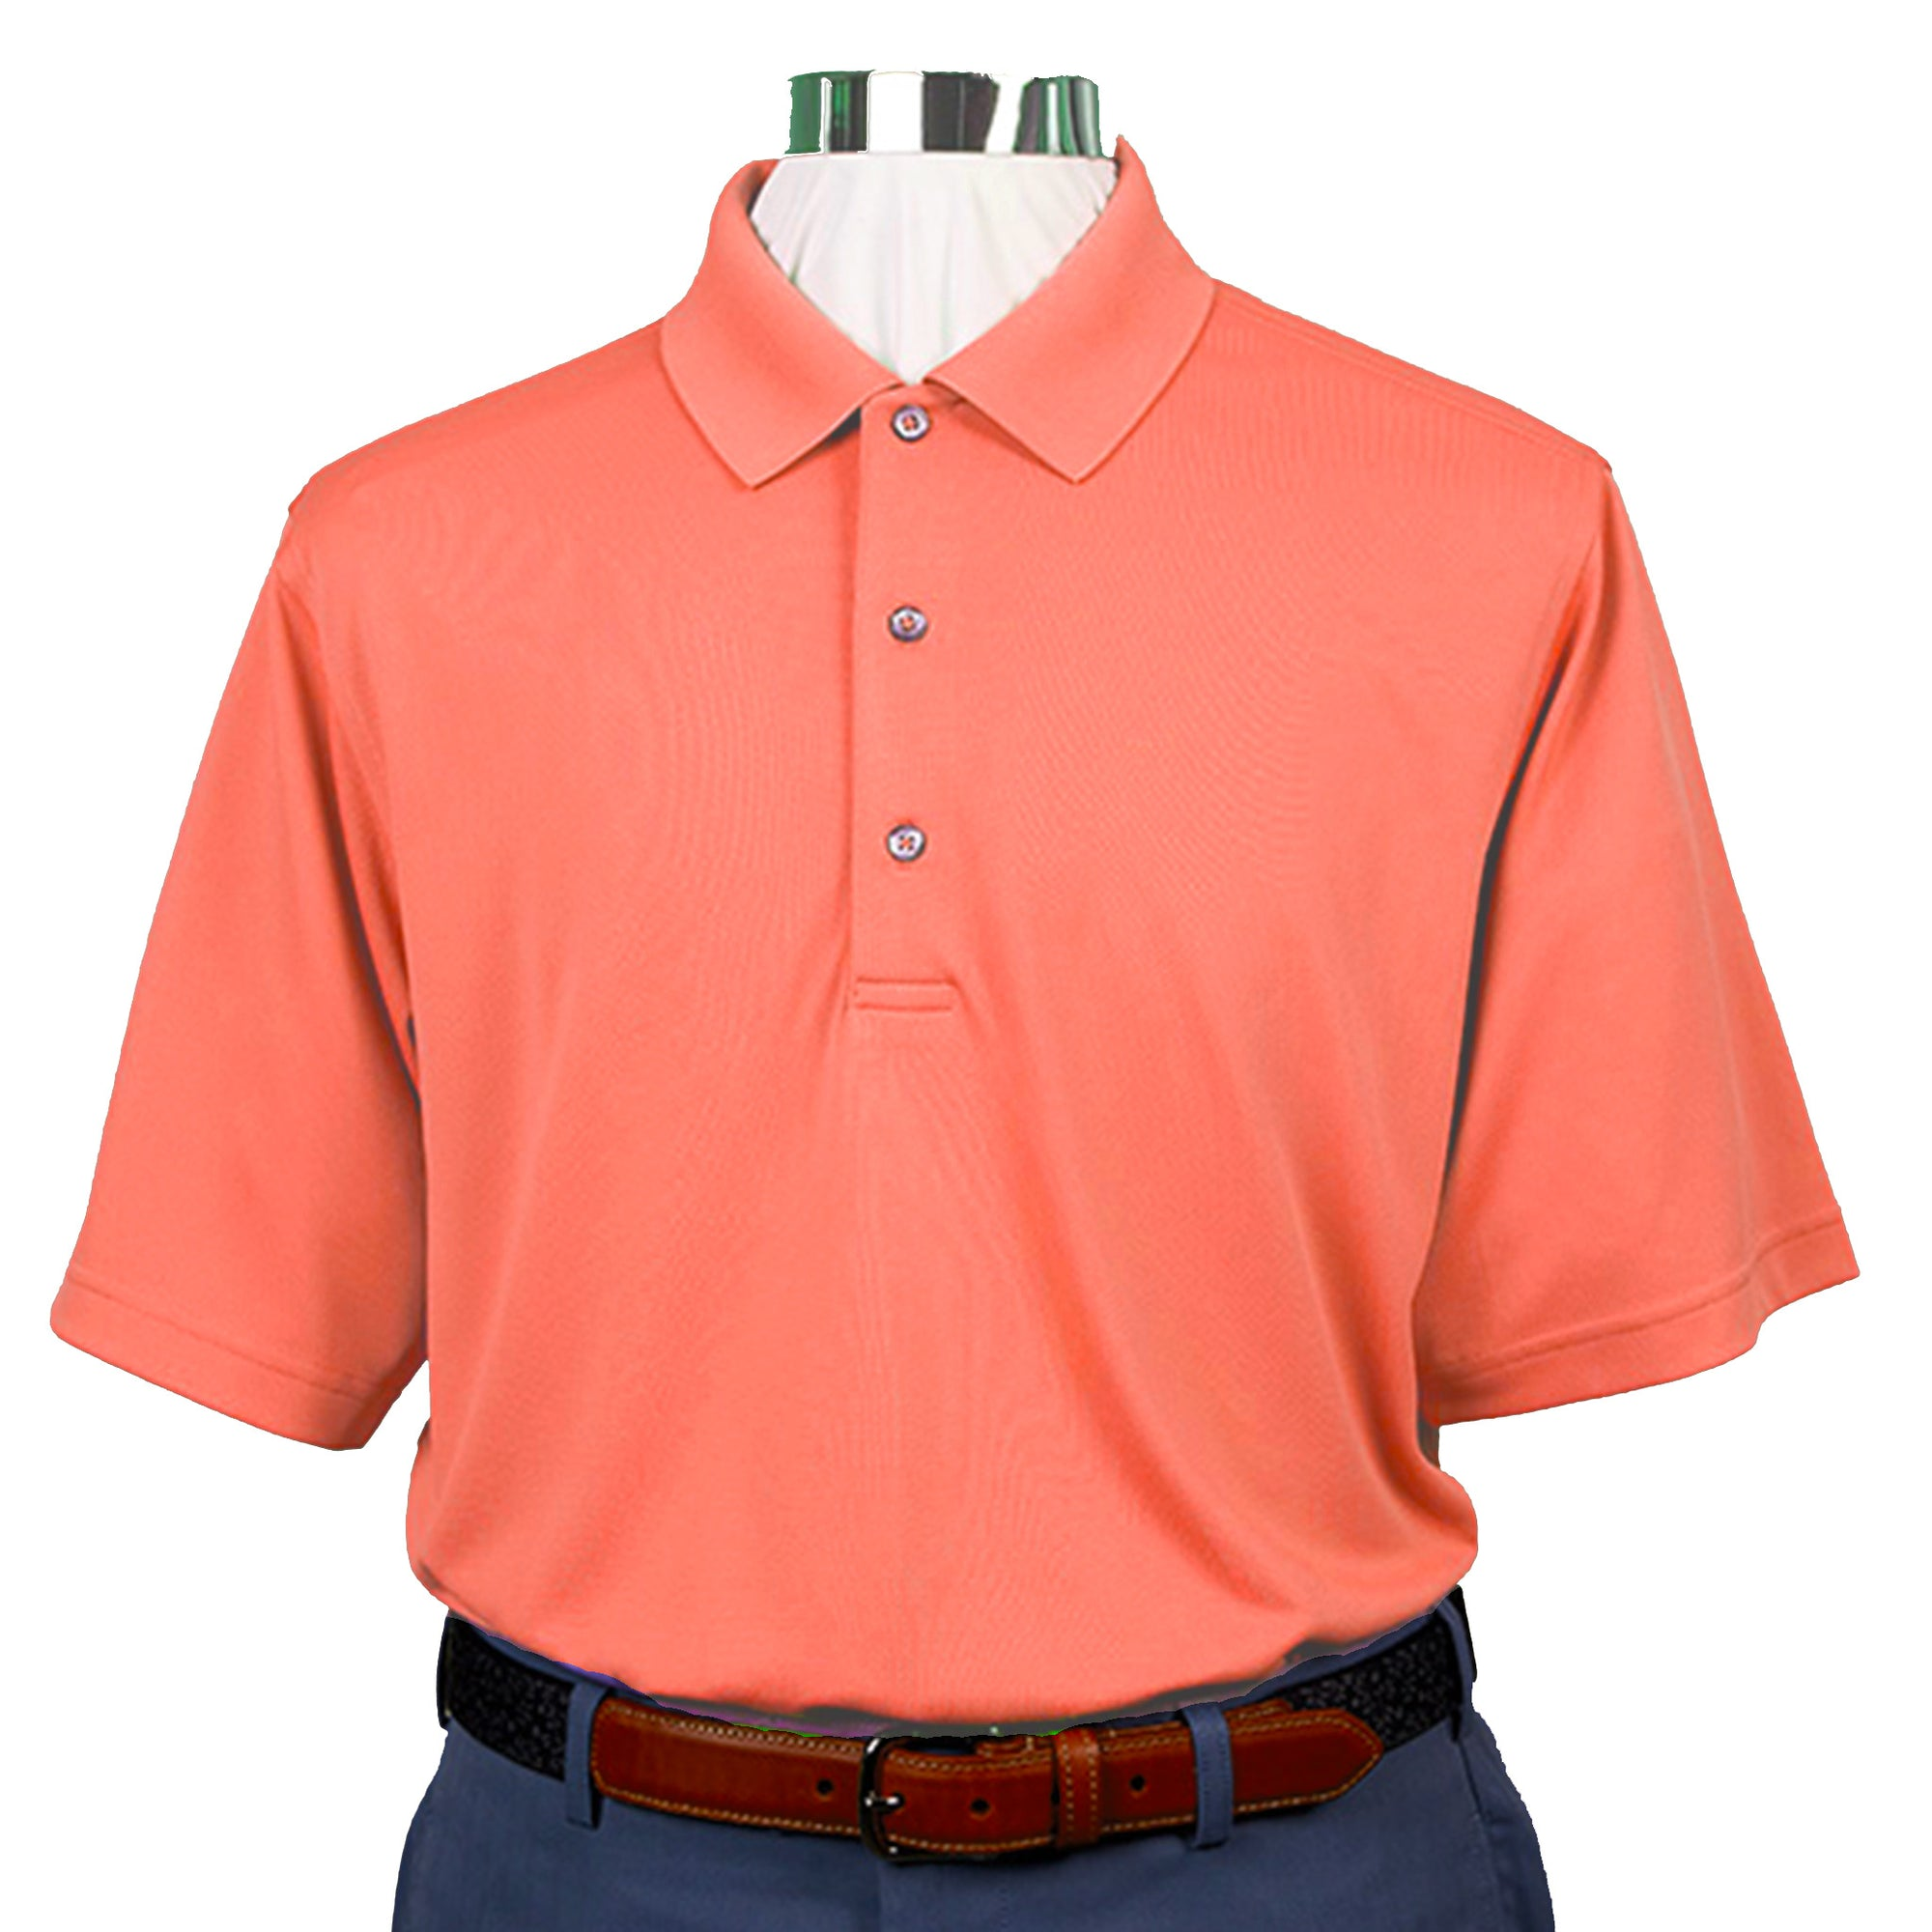 a41e029f86 Mens Short Sleeve Lacoste Style PIQUE - Knit Collar - CORAL